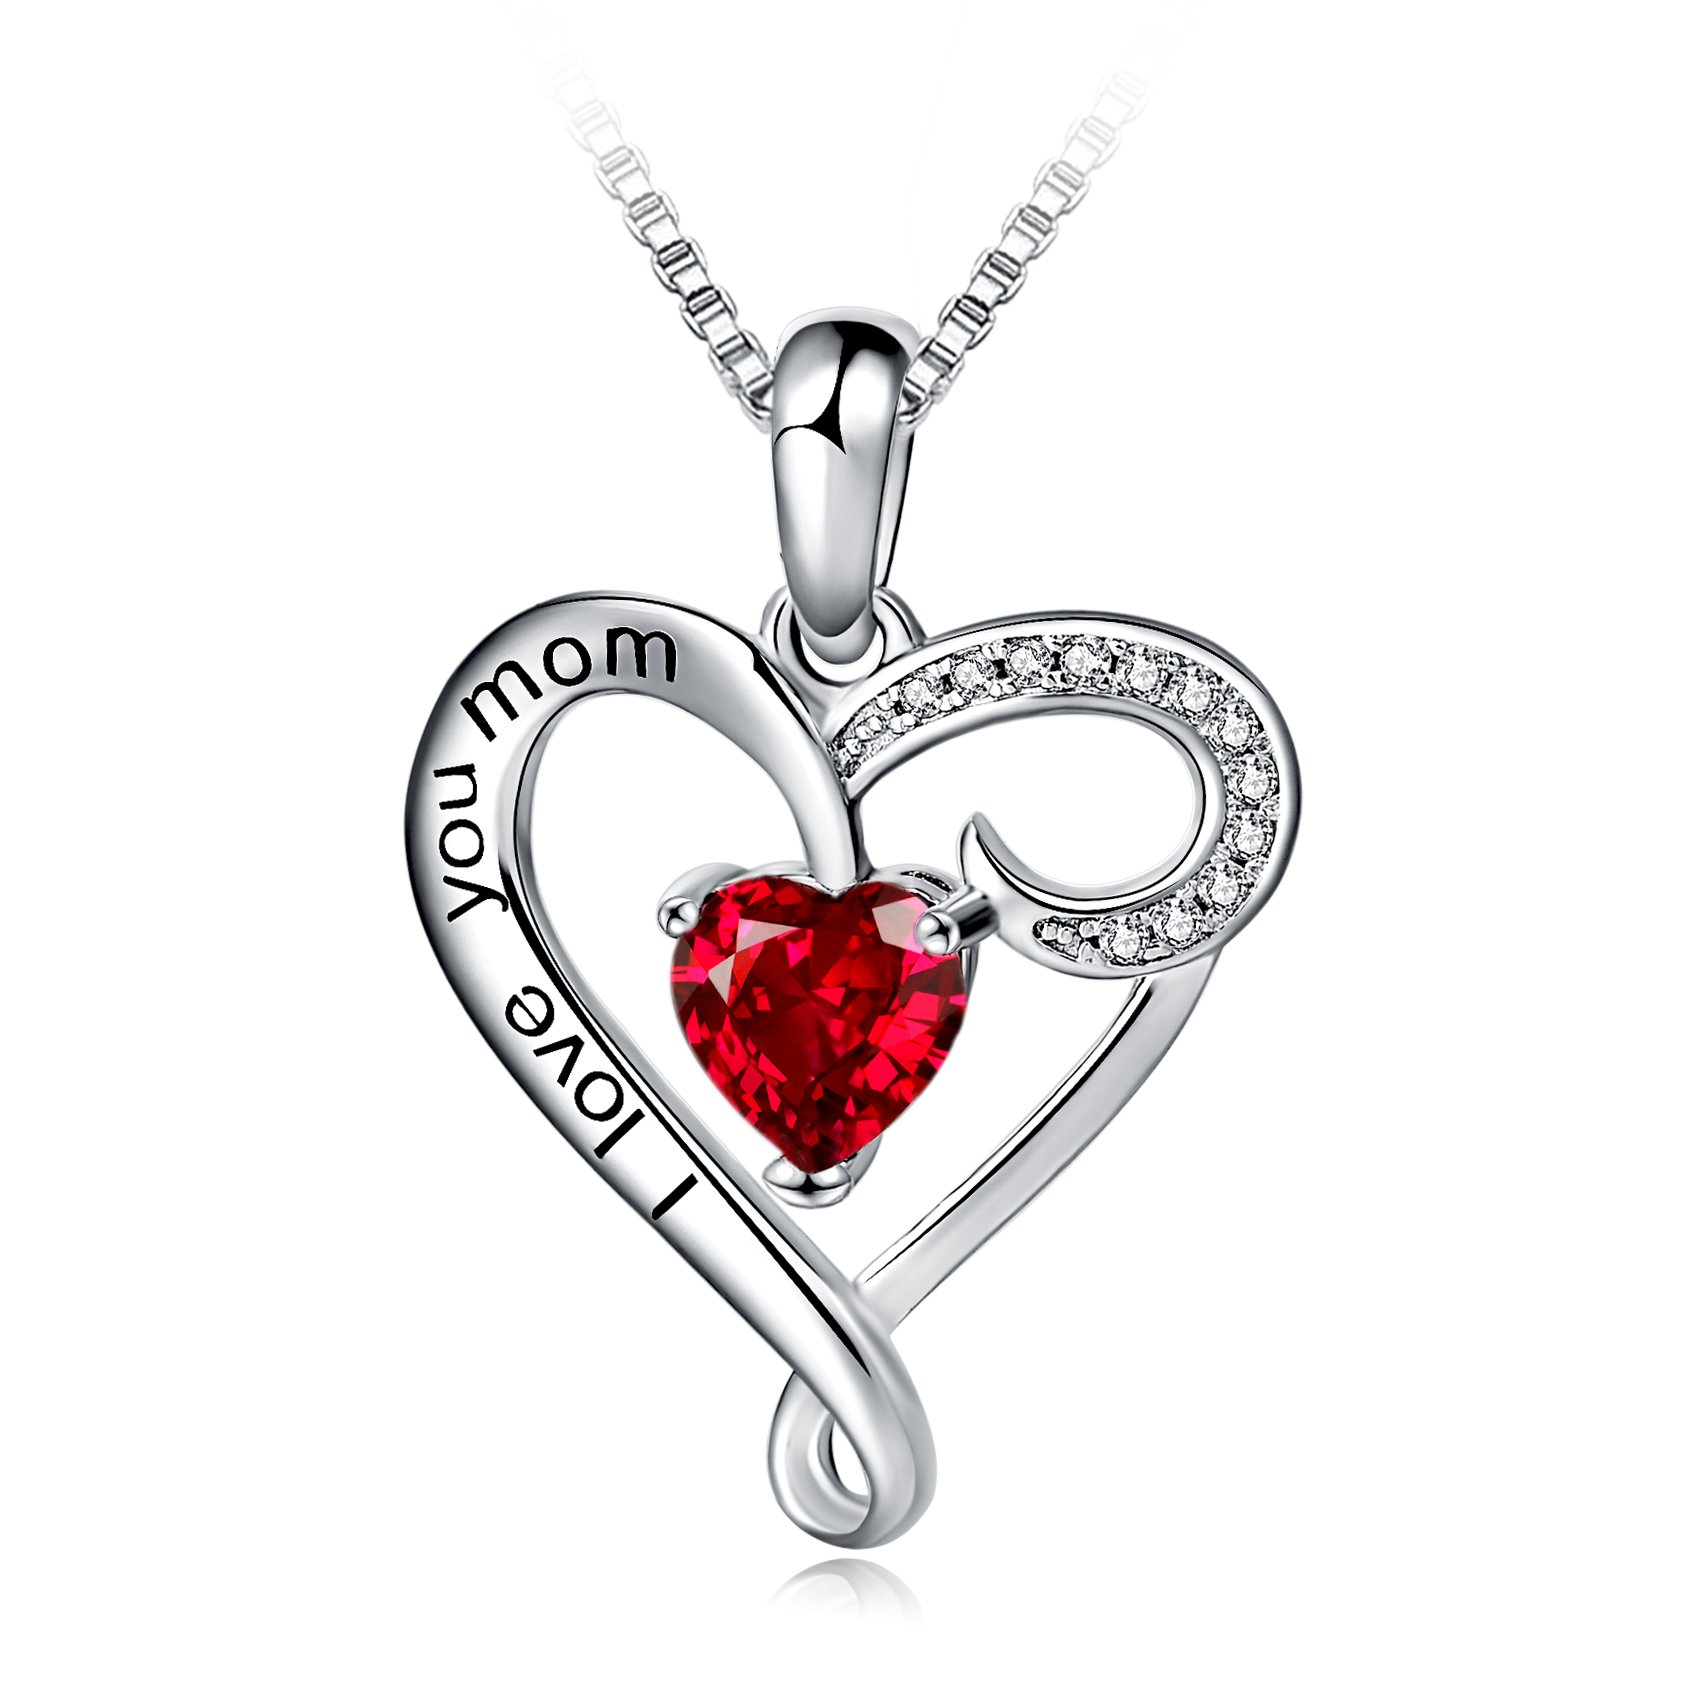 Mother's Birthday Gift''I Love You Mom'' S925 Sterling Silver Heart Pendant Necklace